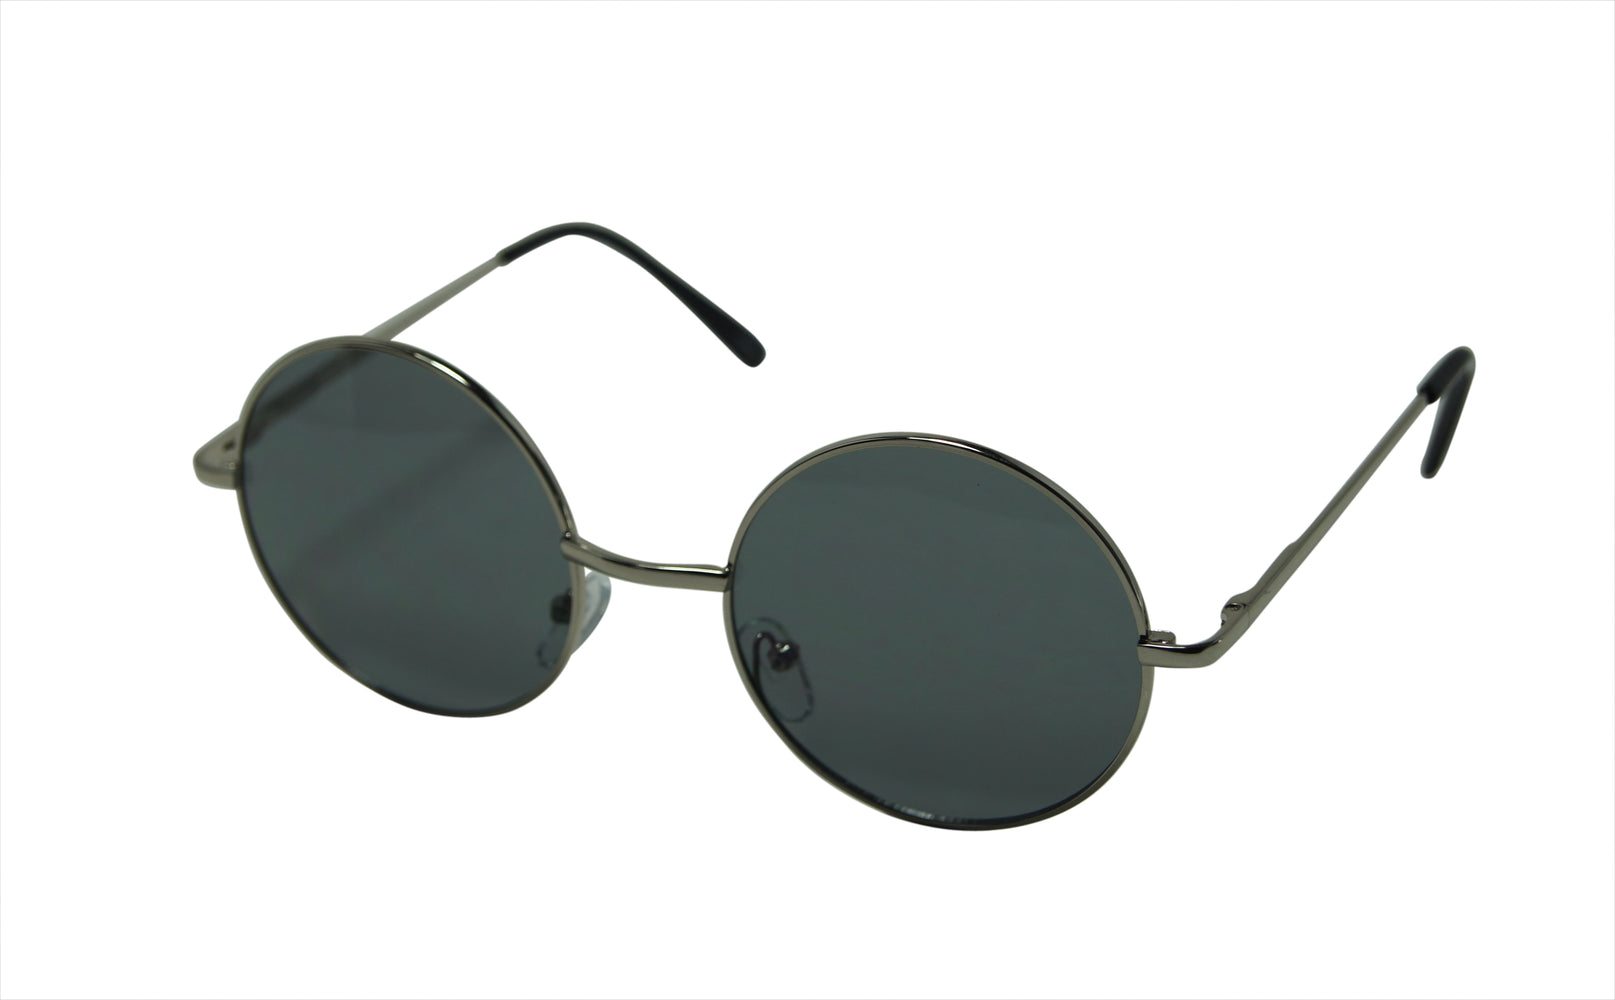 Walter Oversize Slim Temple Round Lens Metal Frame Sunglasses 3385